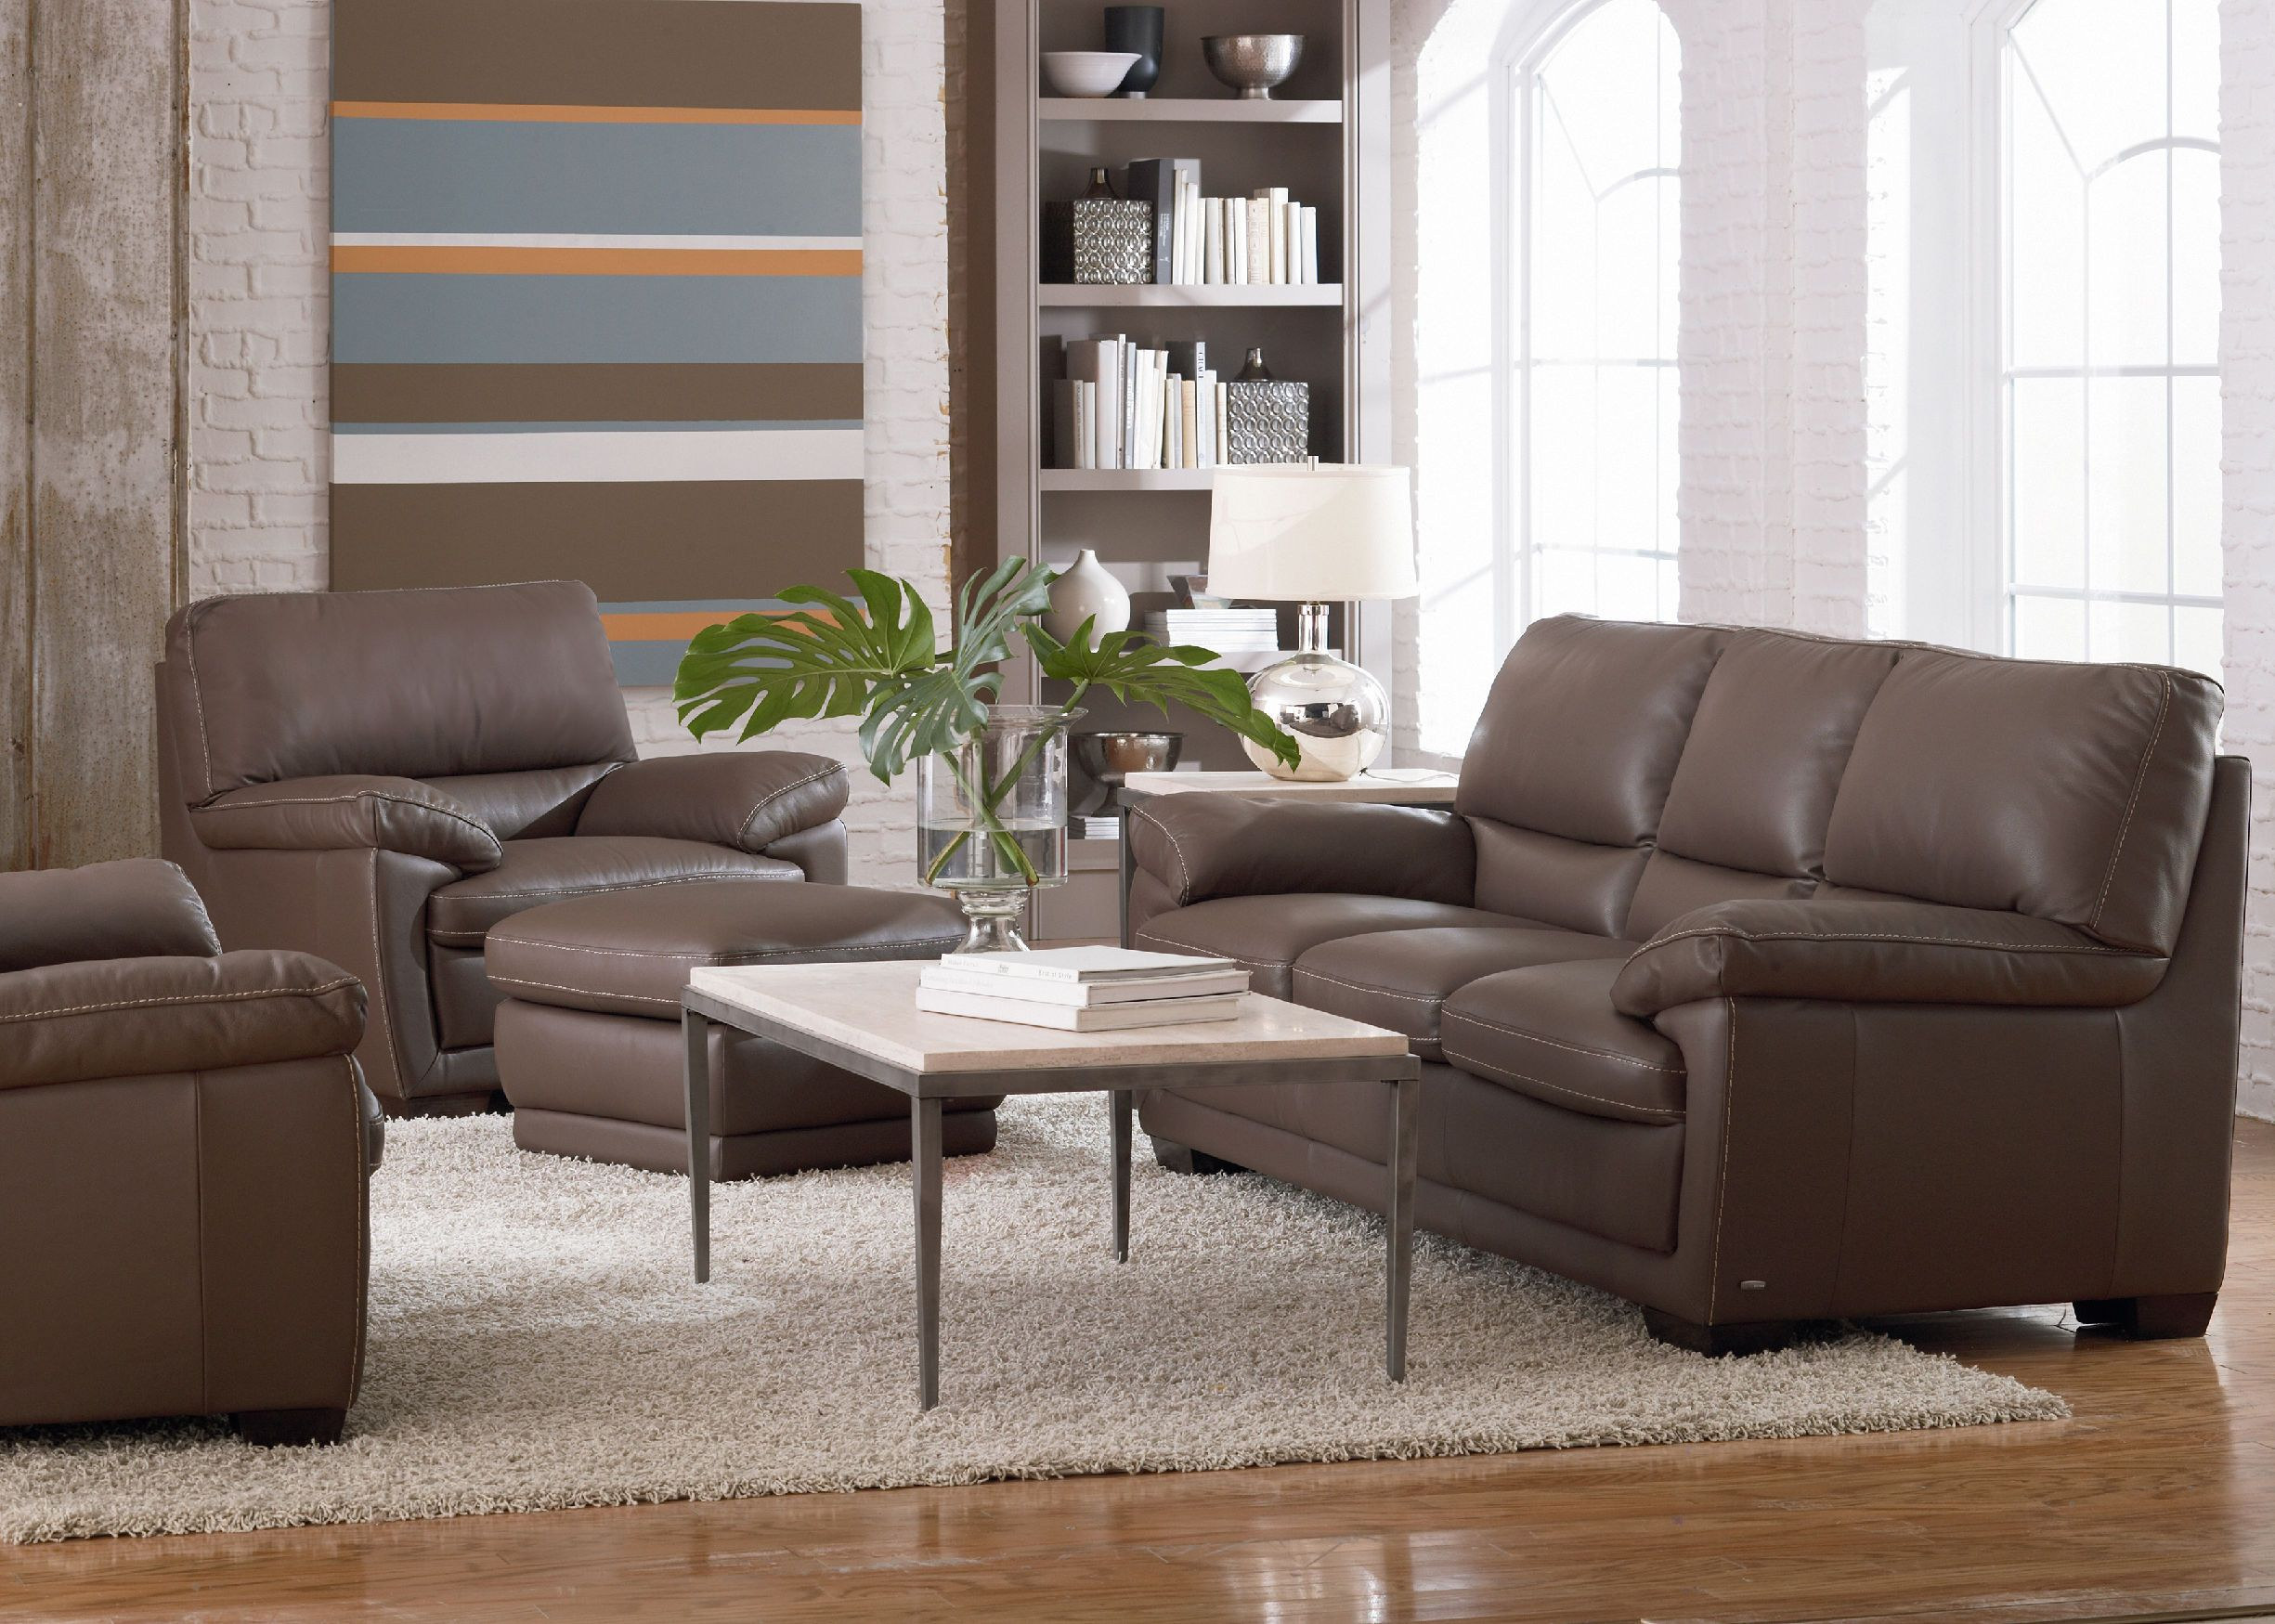 Denver Leather Sofa   DARK TAUPE ST:341188